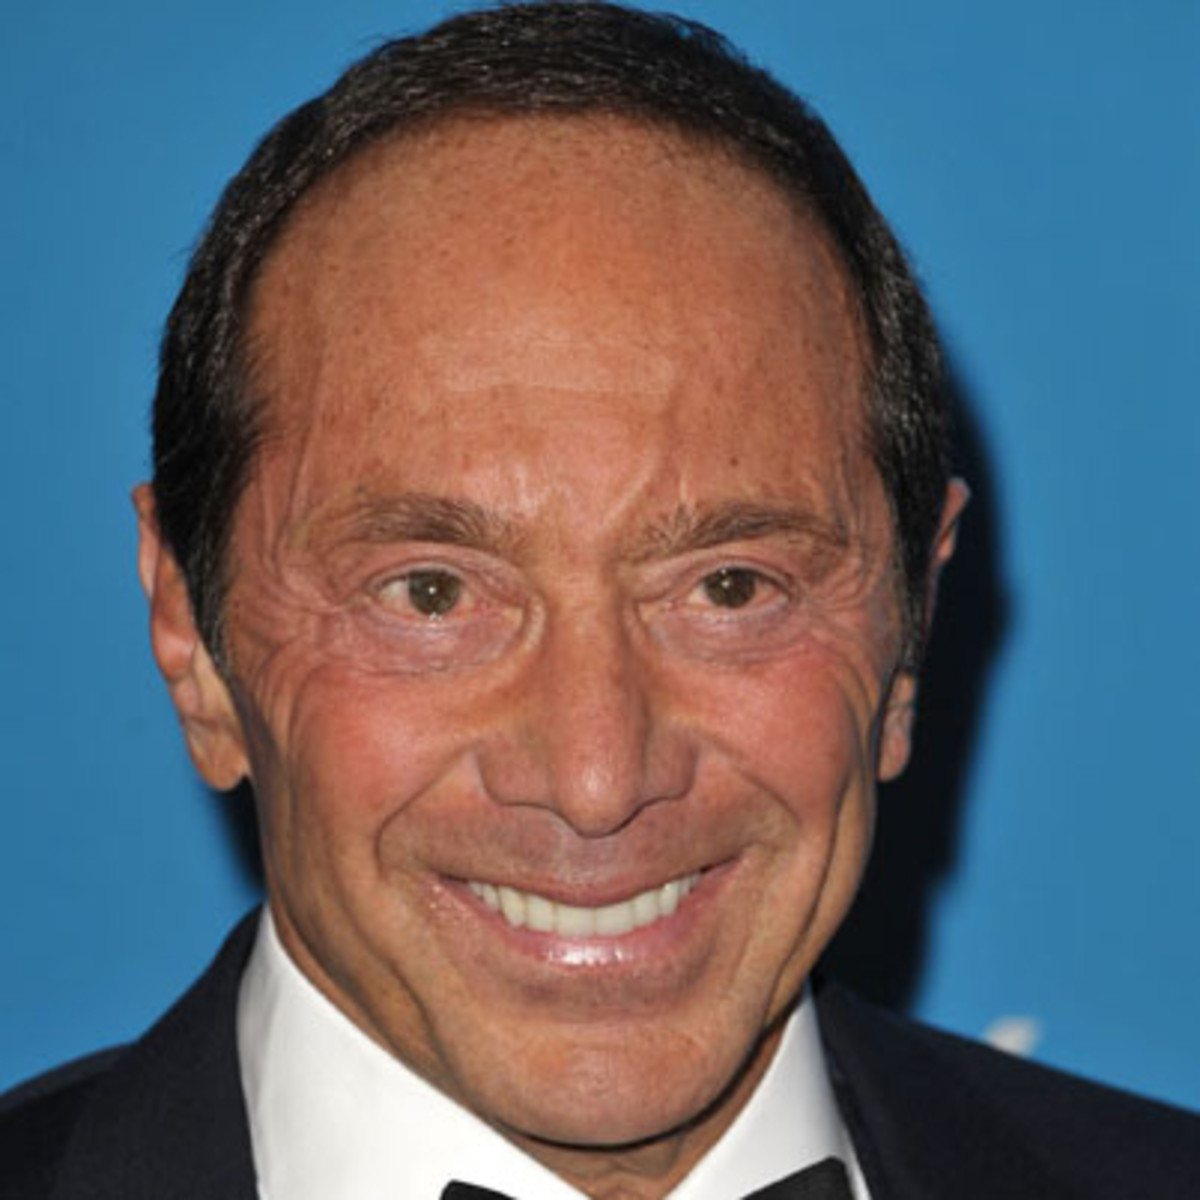 paul anka singer songwriter television actor film actor guitarist pianist actor biography